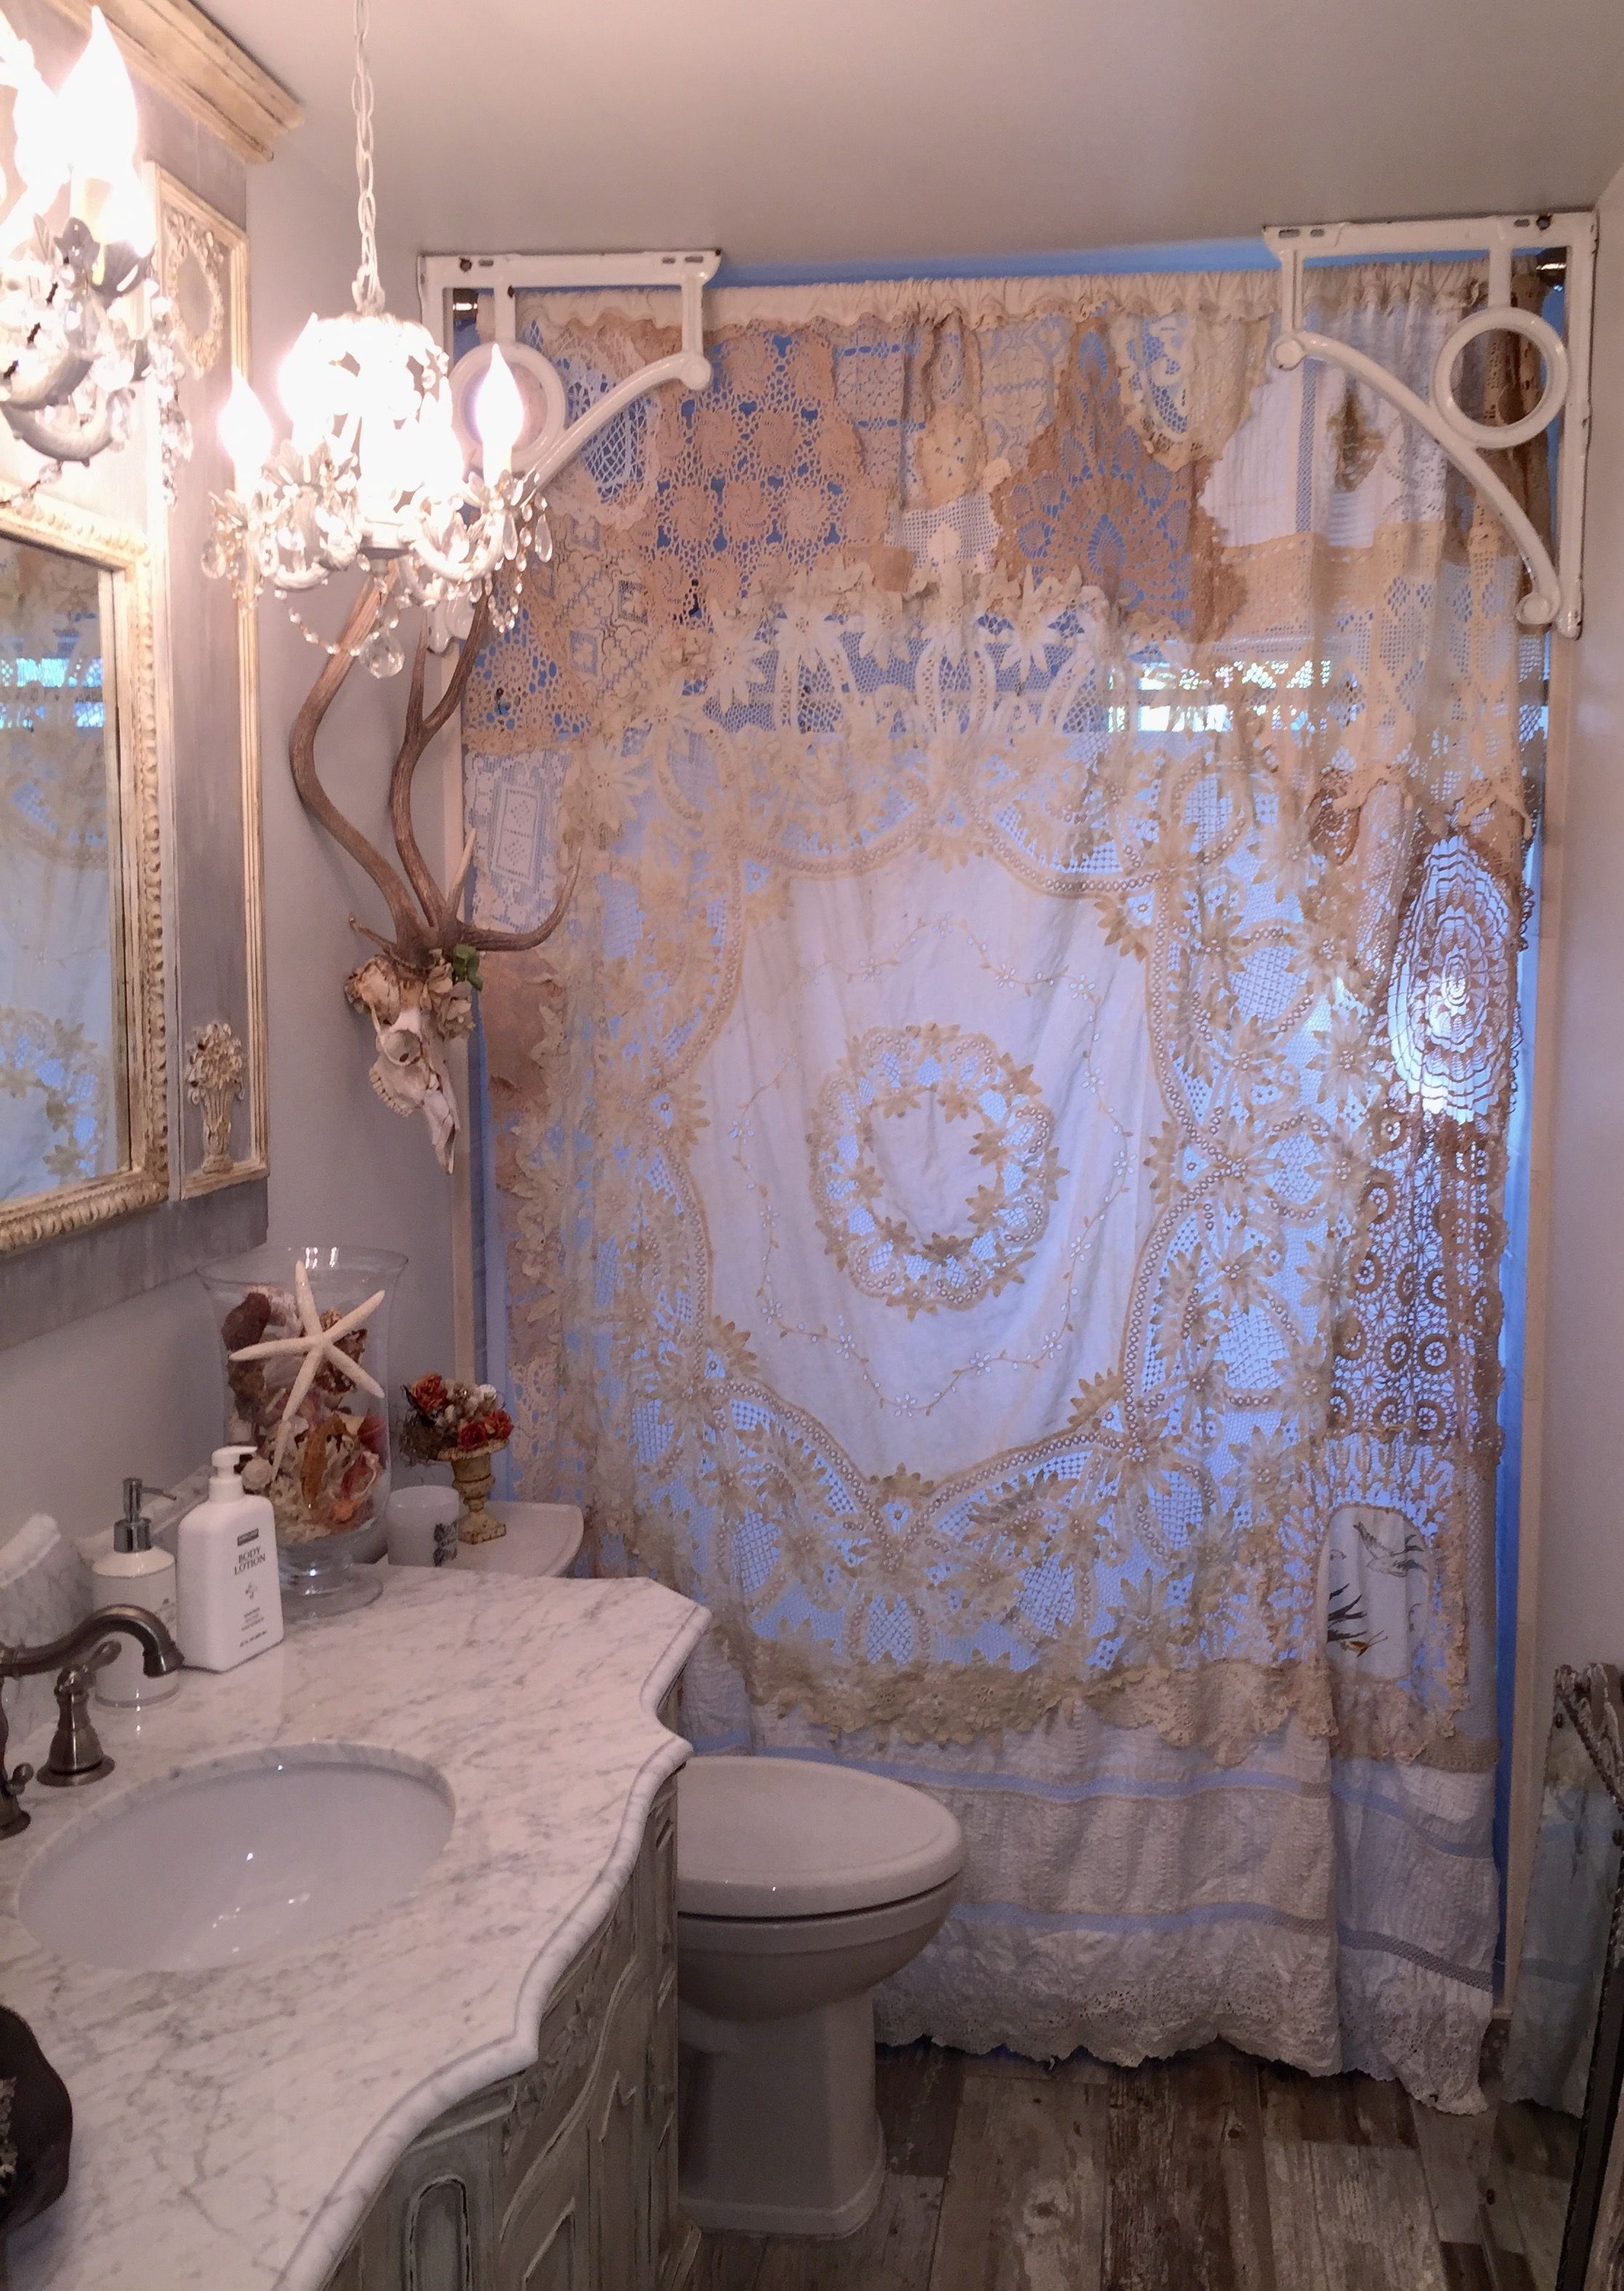 I Made This Shower Curtain From Old Pieces Of Crochet And Lace